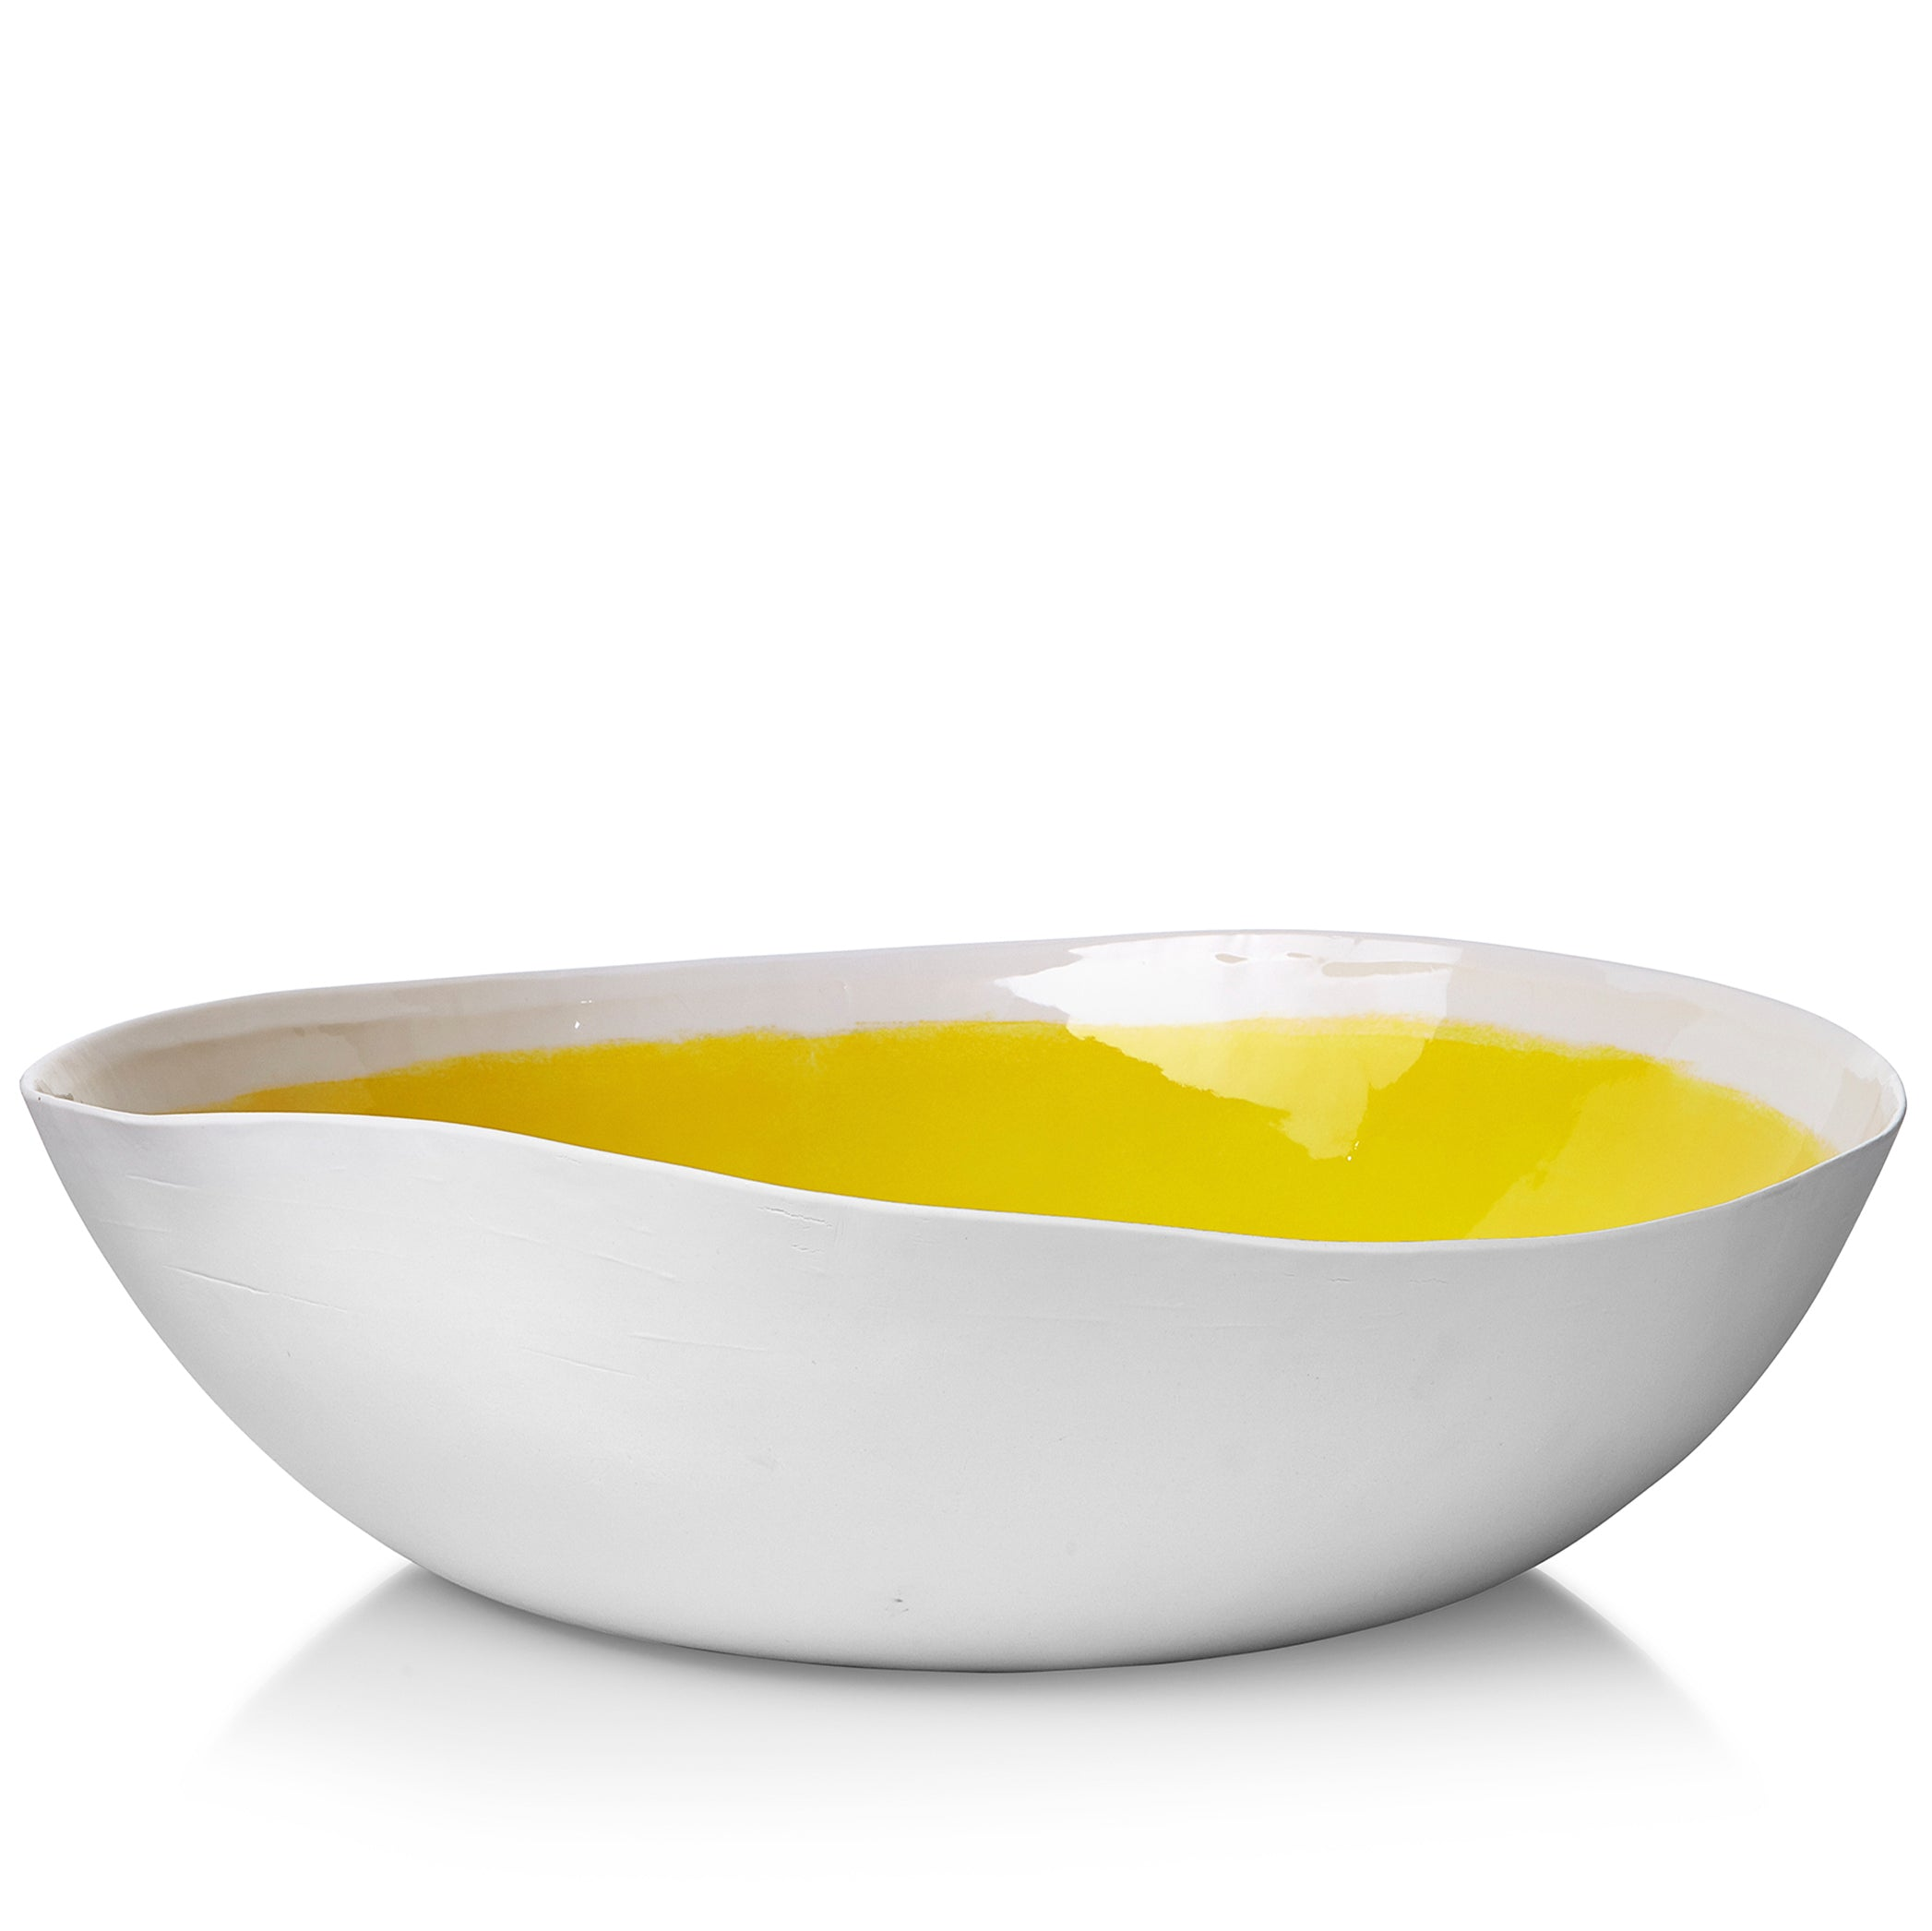 S&B Handmade 43cm Porcelain Extra Large Salad Bowl with Yellow Glaze